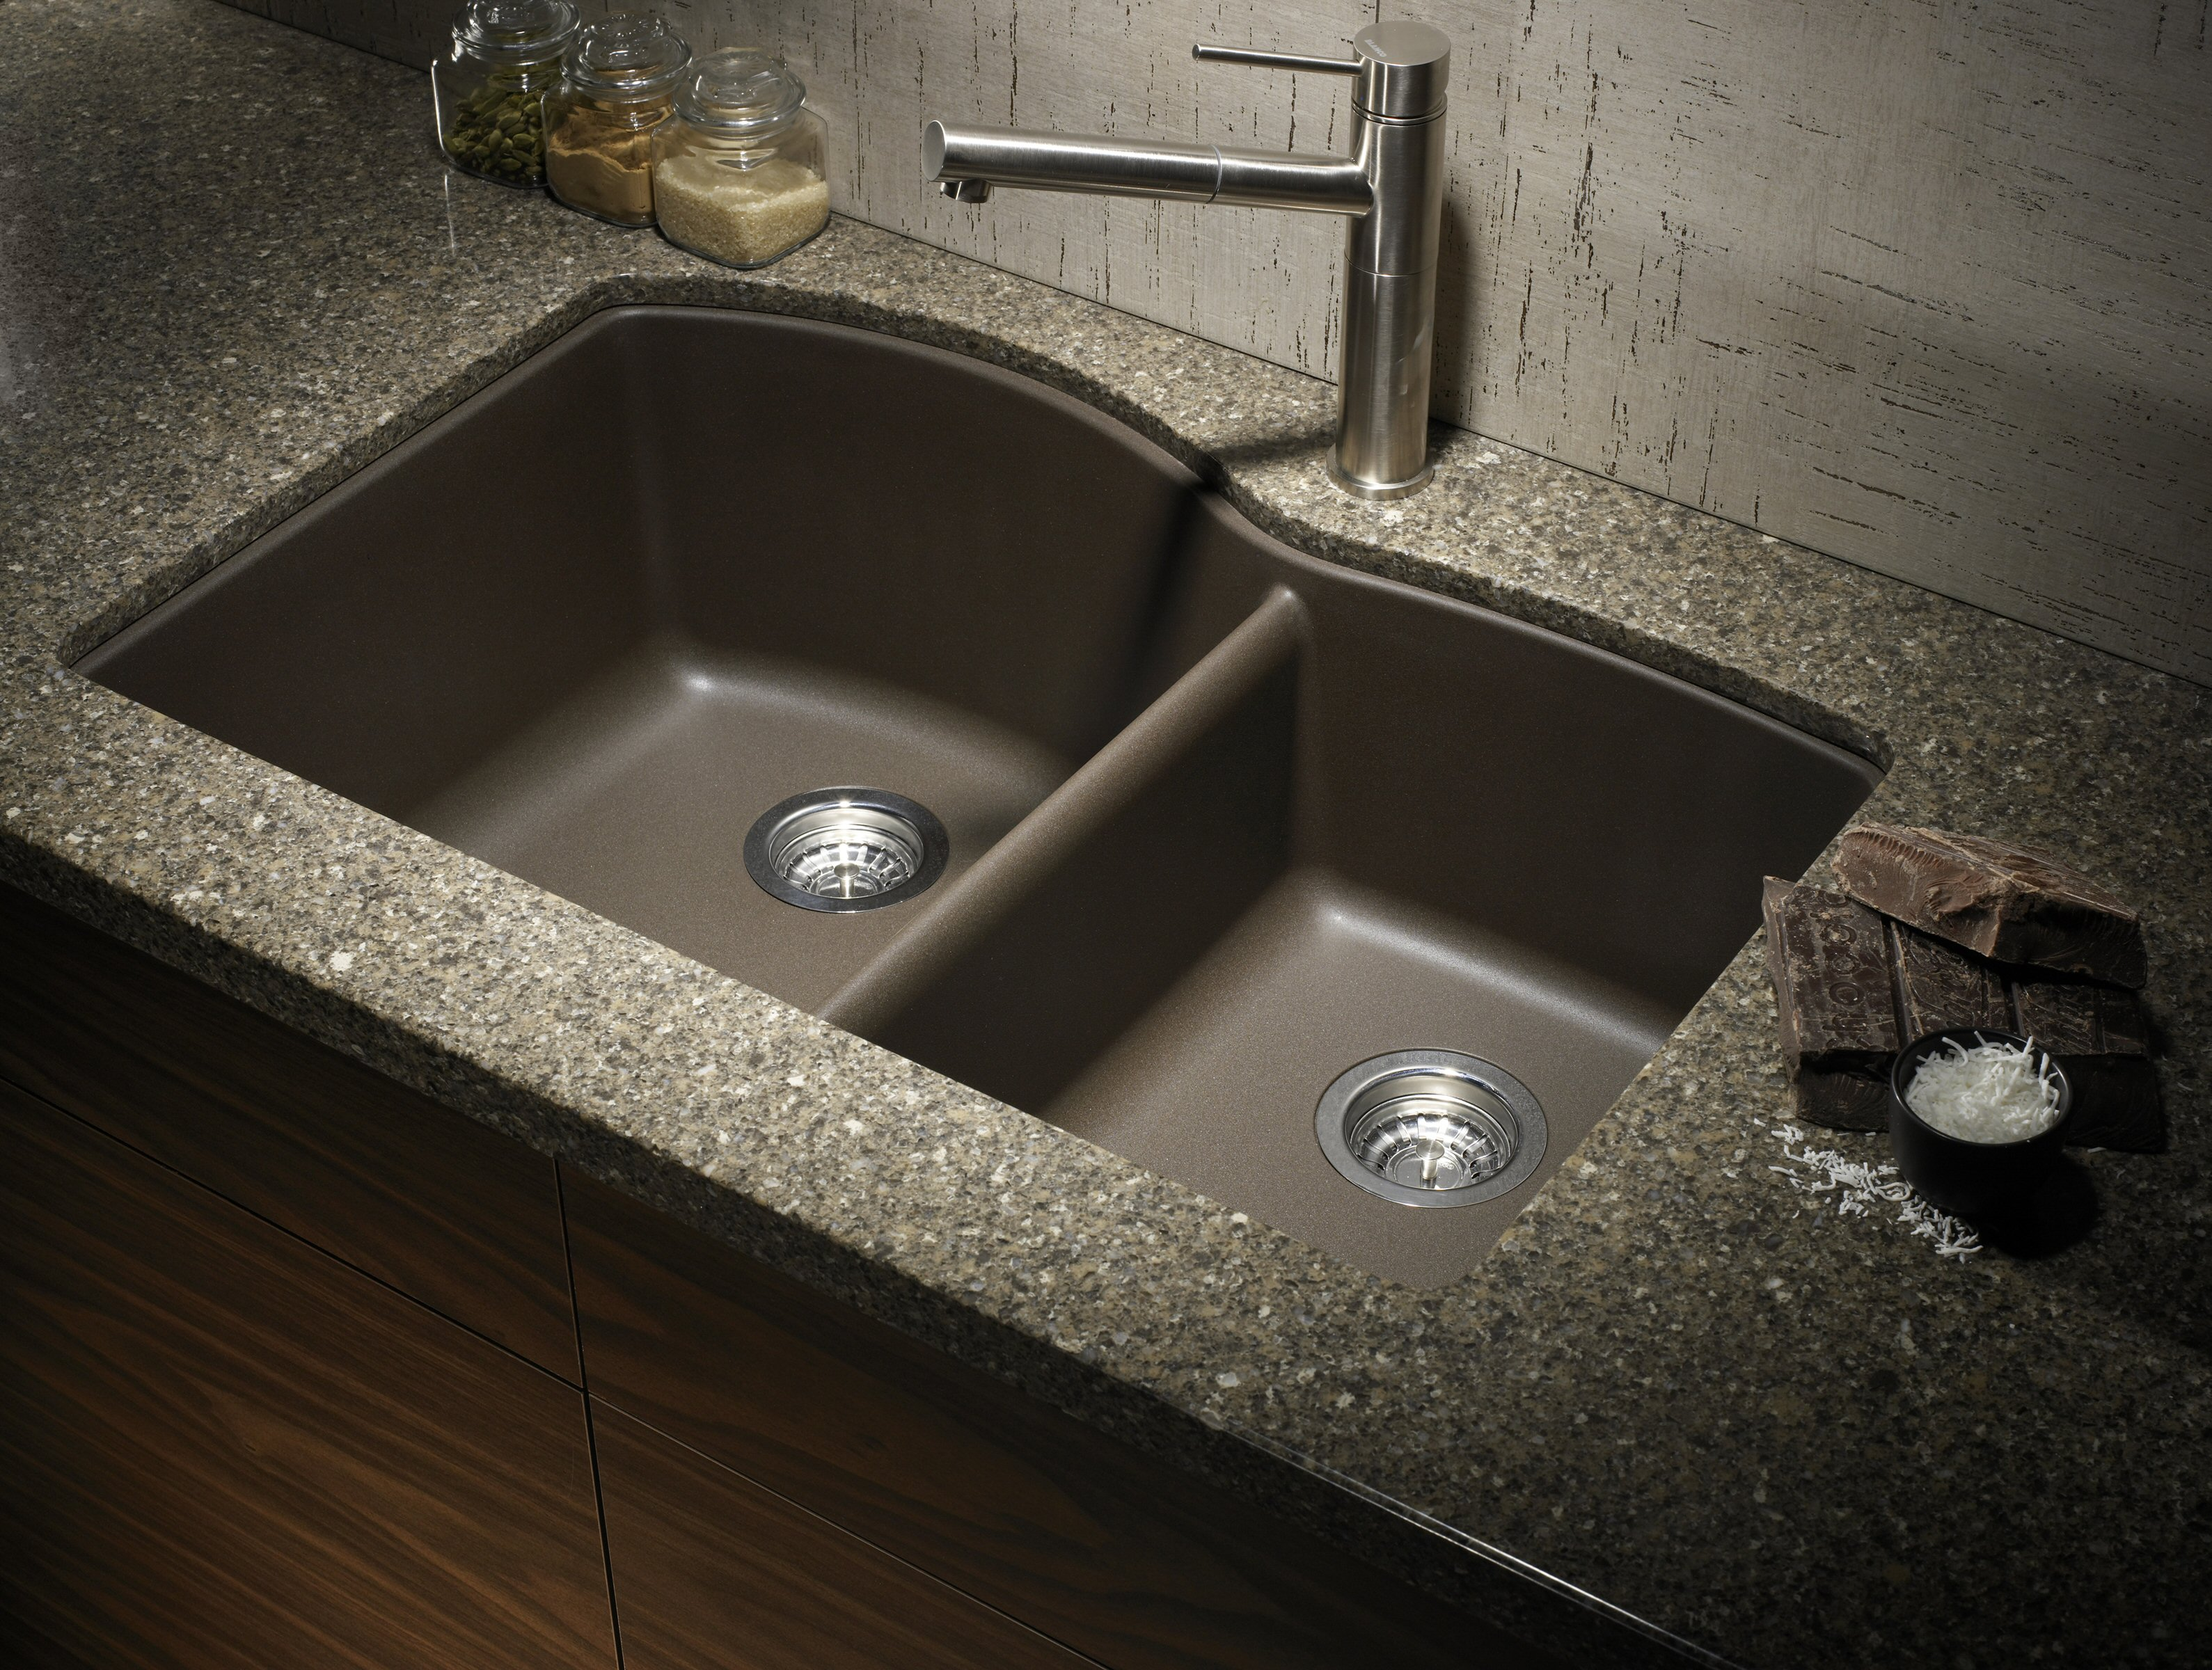 How To Clean A Blanco Granite Sink Ehow Uk